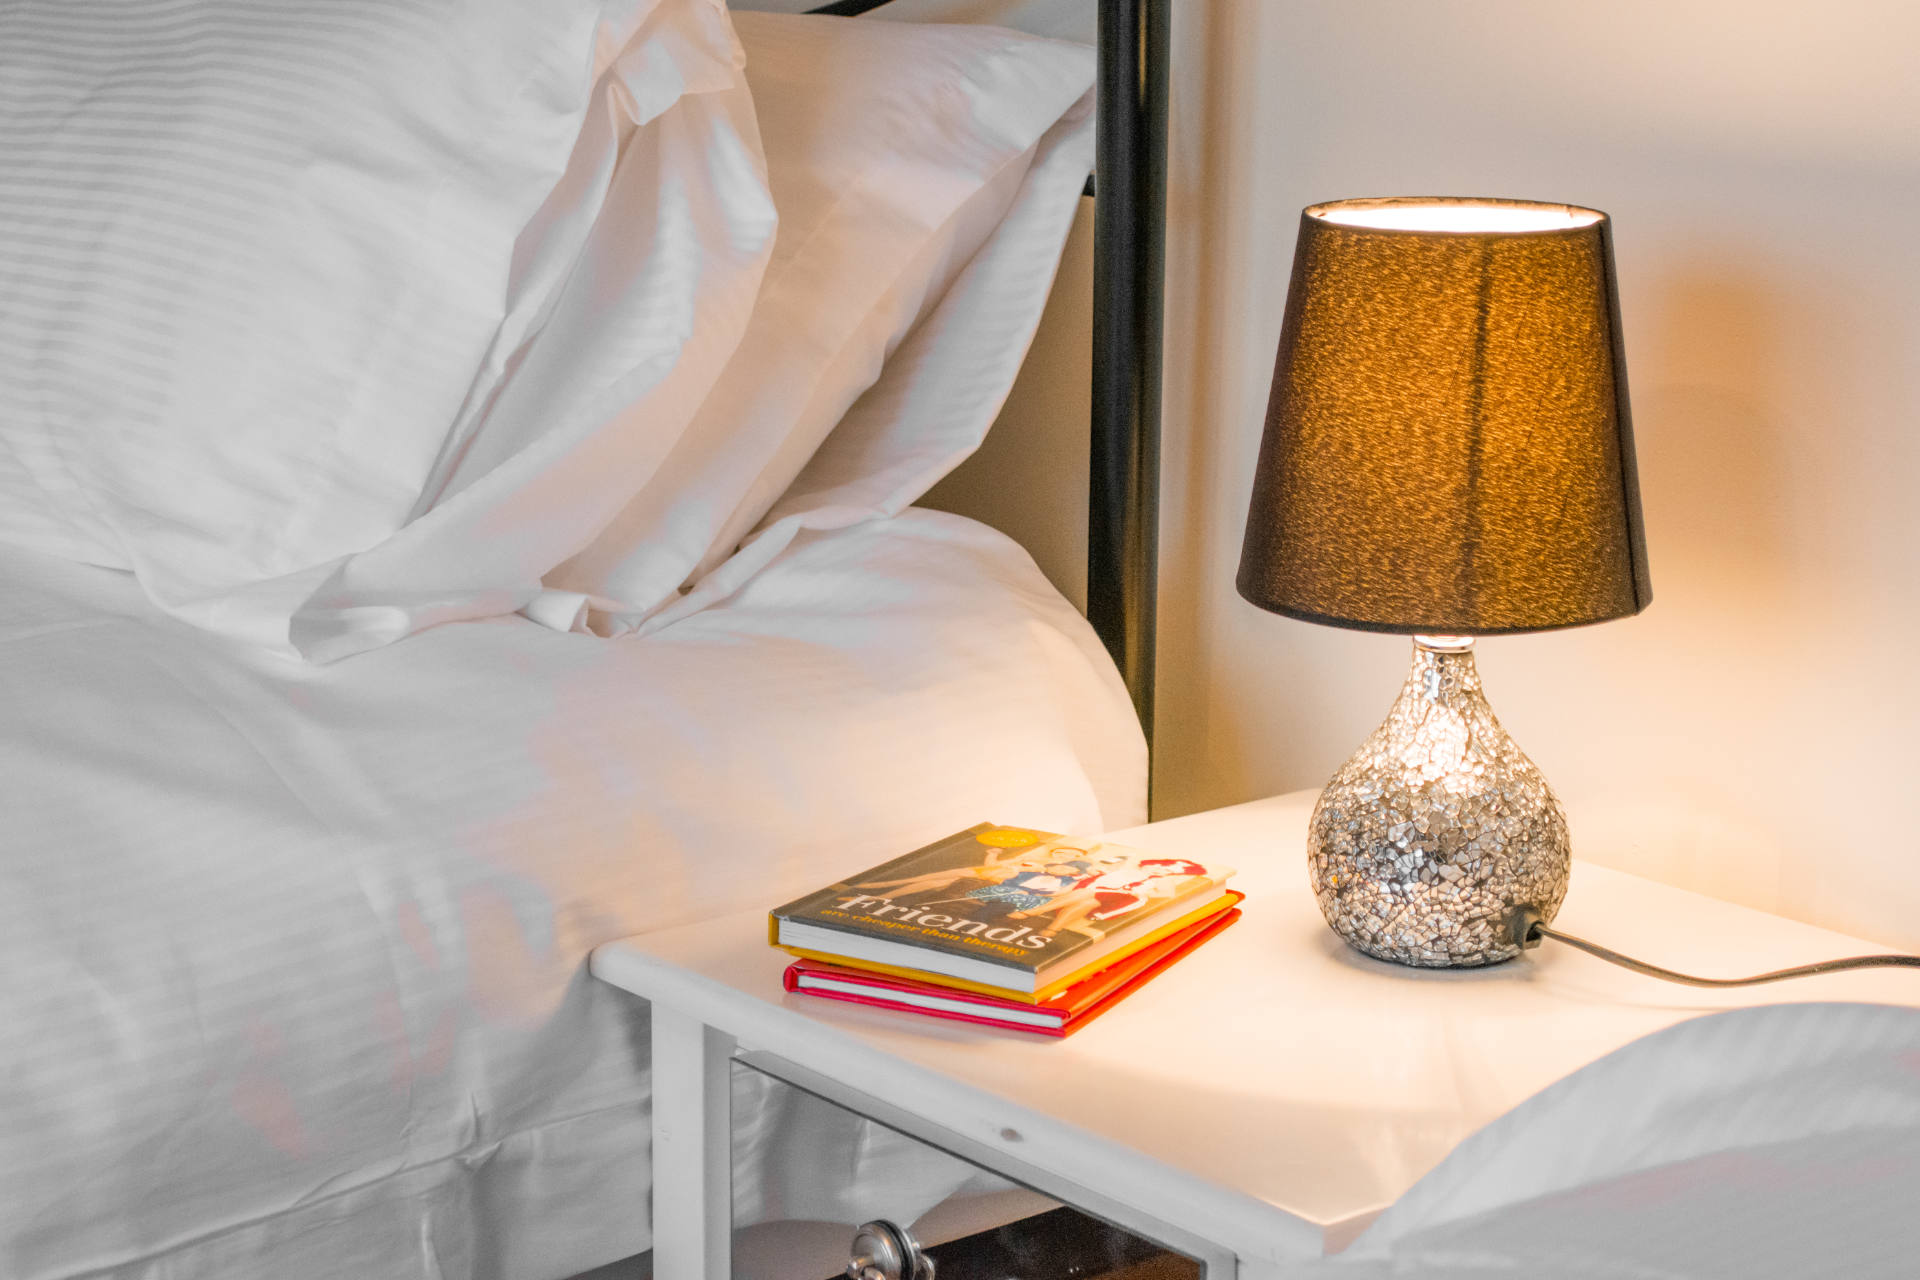 Close up shot of bedside table with book and lamp.